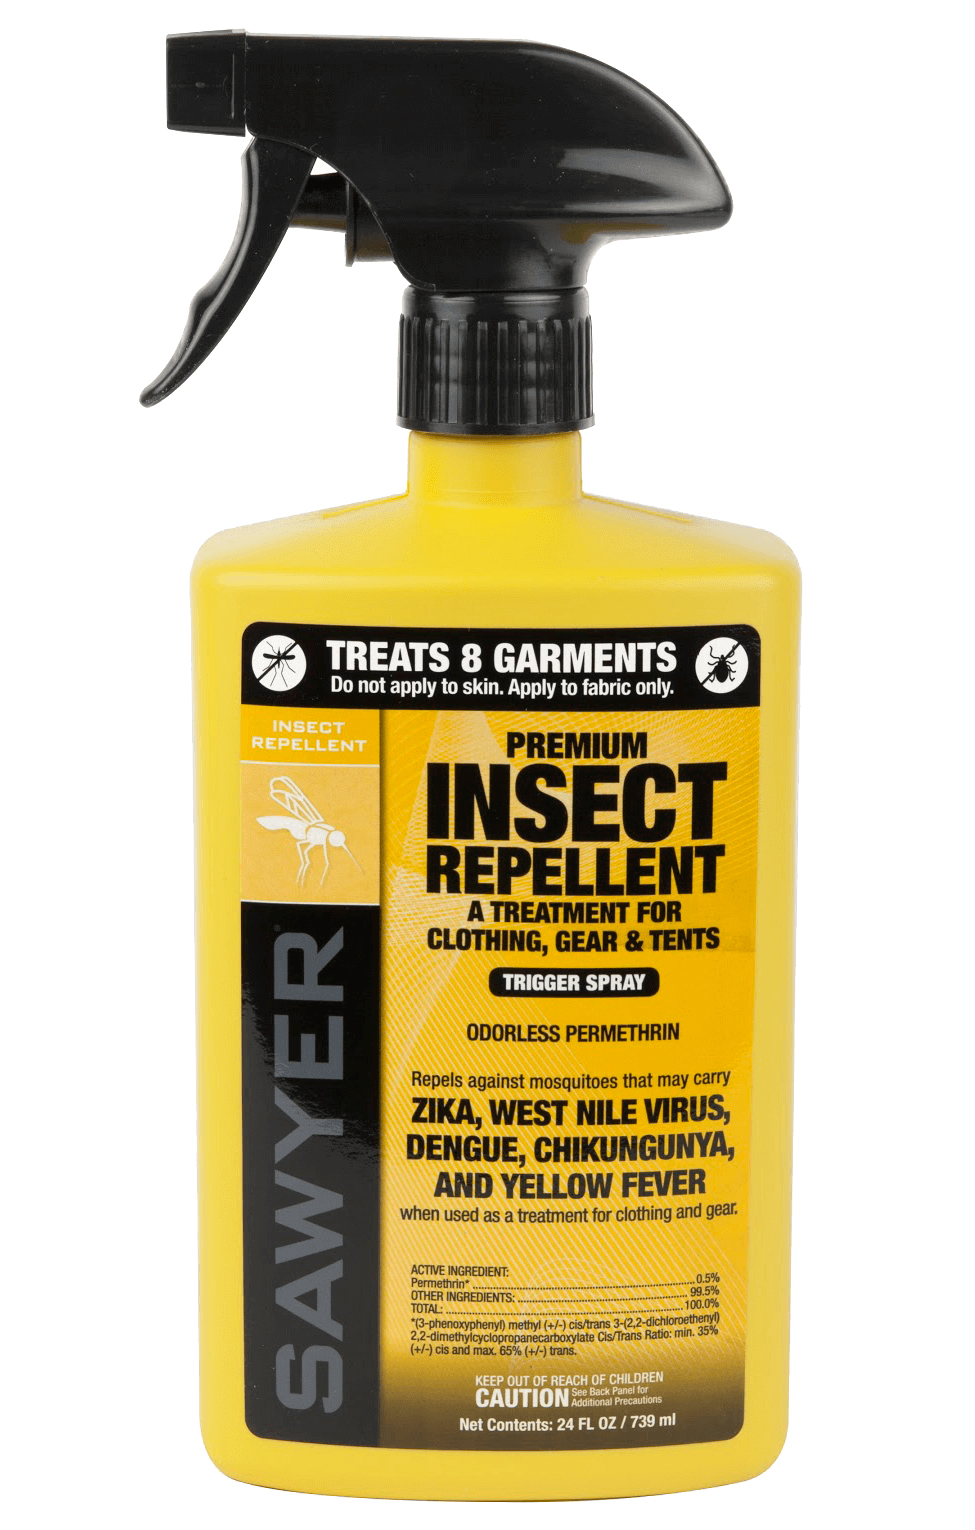 Bug repellent is a must outside. Ticks can come out on a warm day even in the winter. I am a big fan of Permethrin. spray down your clothes or gear with it and Wait for it to dry overnight. it's better than DEET, I think, and lasts for six washes or six weeks.